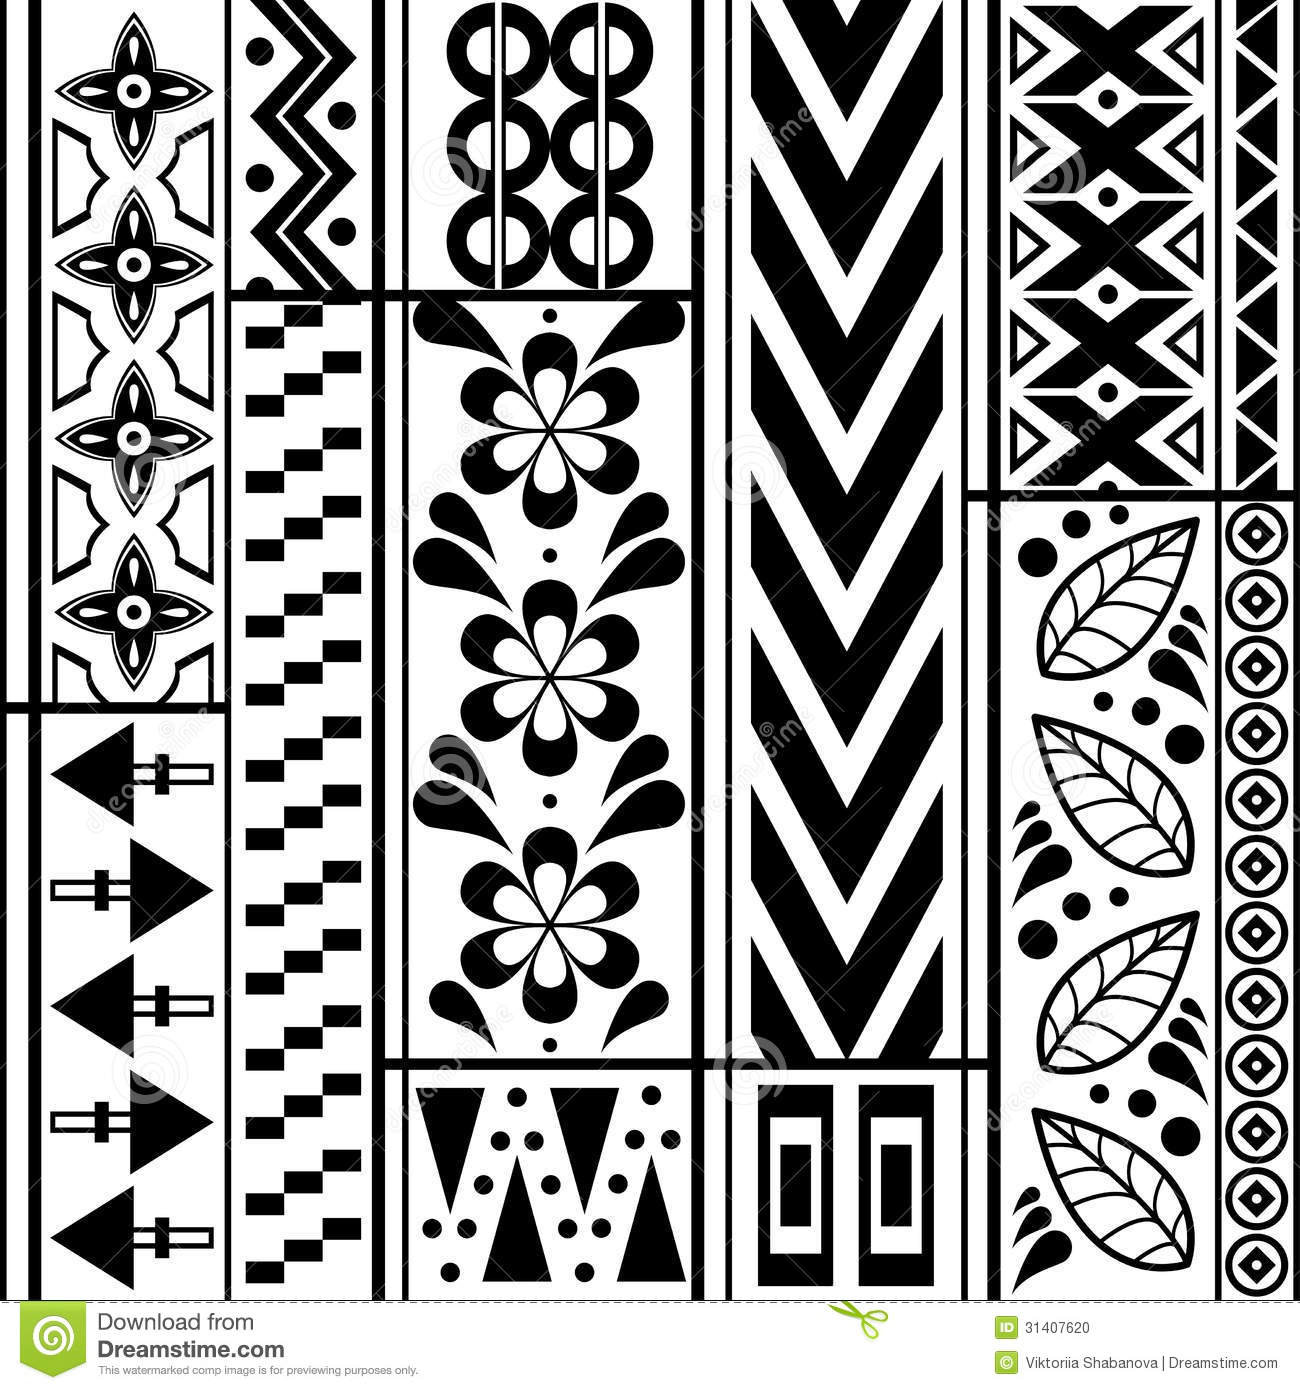 simple geometric black and white pattern stock image - image of